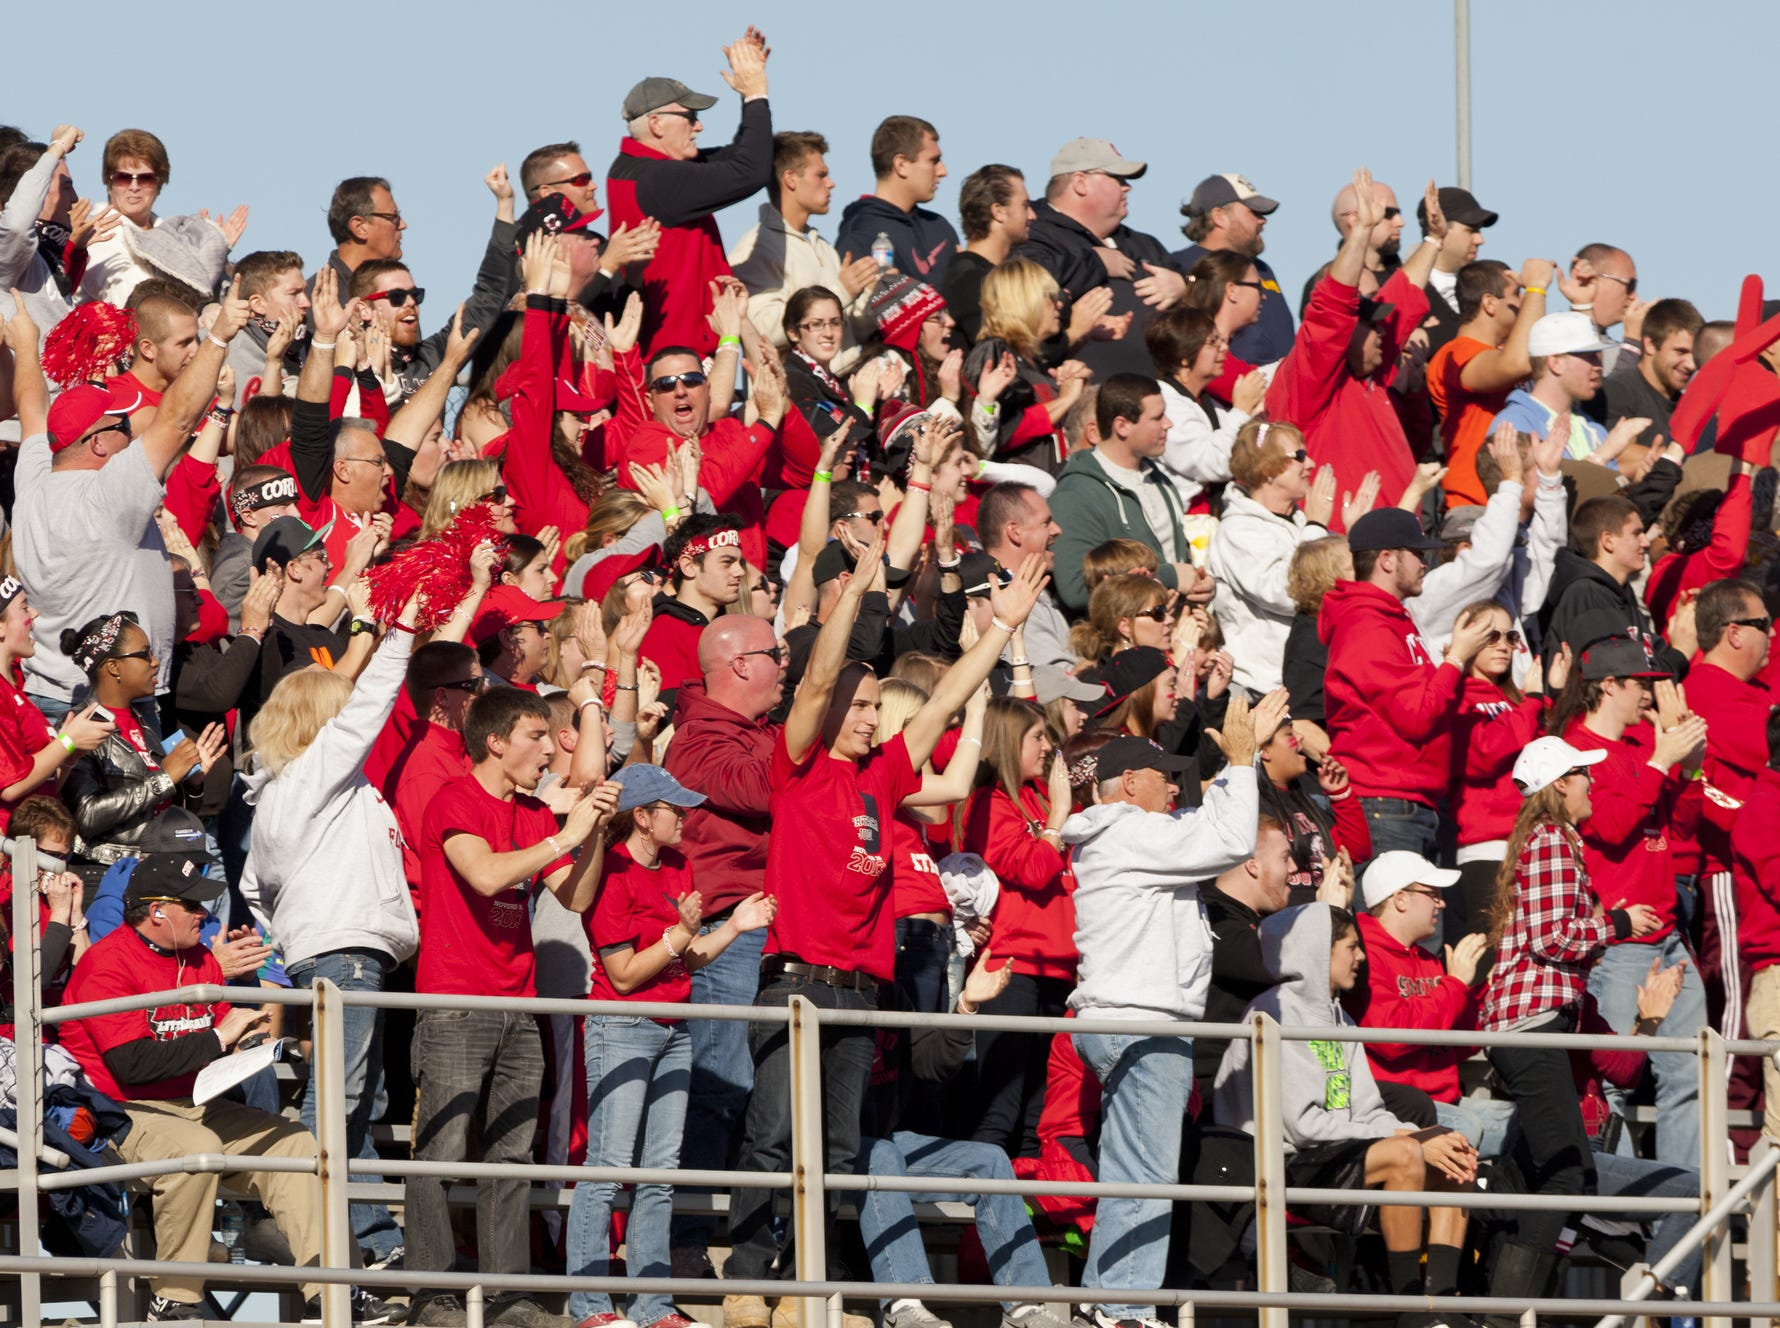 2013: SUNY Cortland fans cheer Saturday afternoon during the annual Cortaca Jug game at Butterfield Stadium at Ithaca College. Cortland defeated Ithaca 28-24.